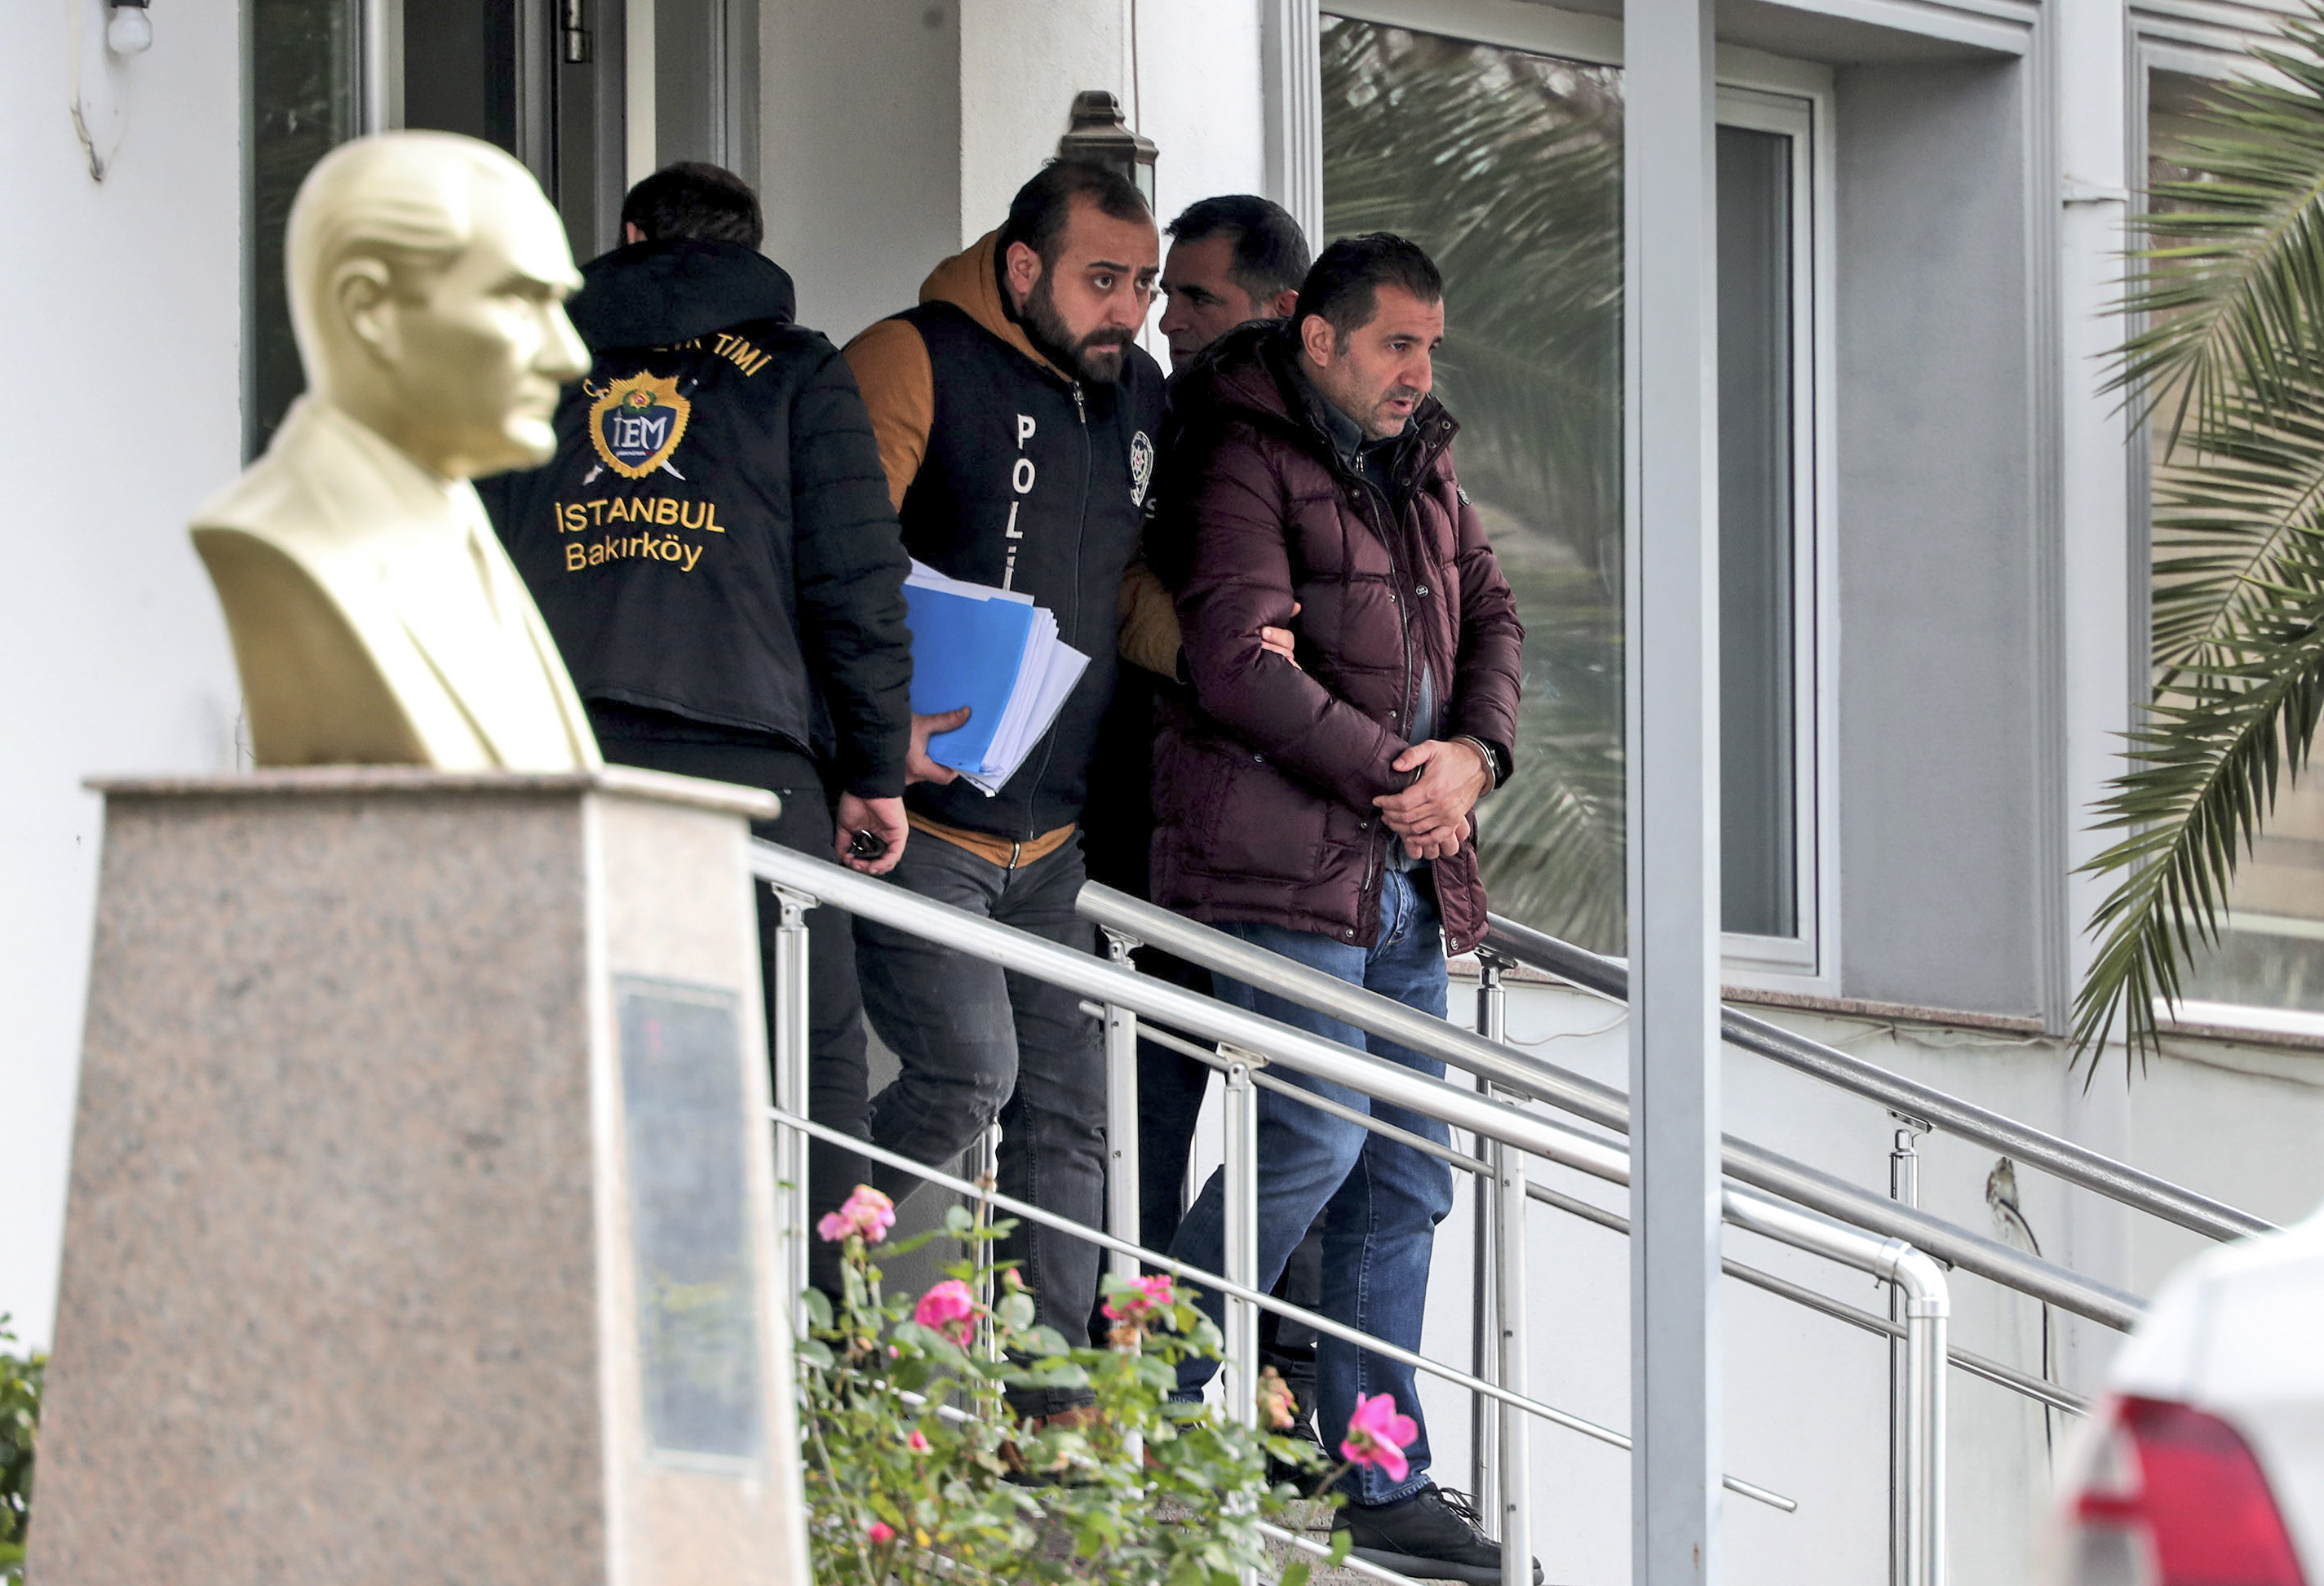 Turkish police officers escort suspects, accused of involvement of Nissan's former CEO Carlos Ghosn passage through Istanbul, after he fled Japan, in Istanbul, Friday, January 3, 2020